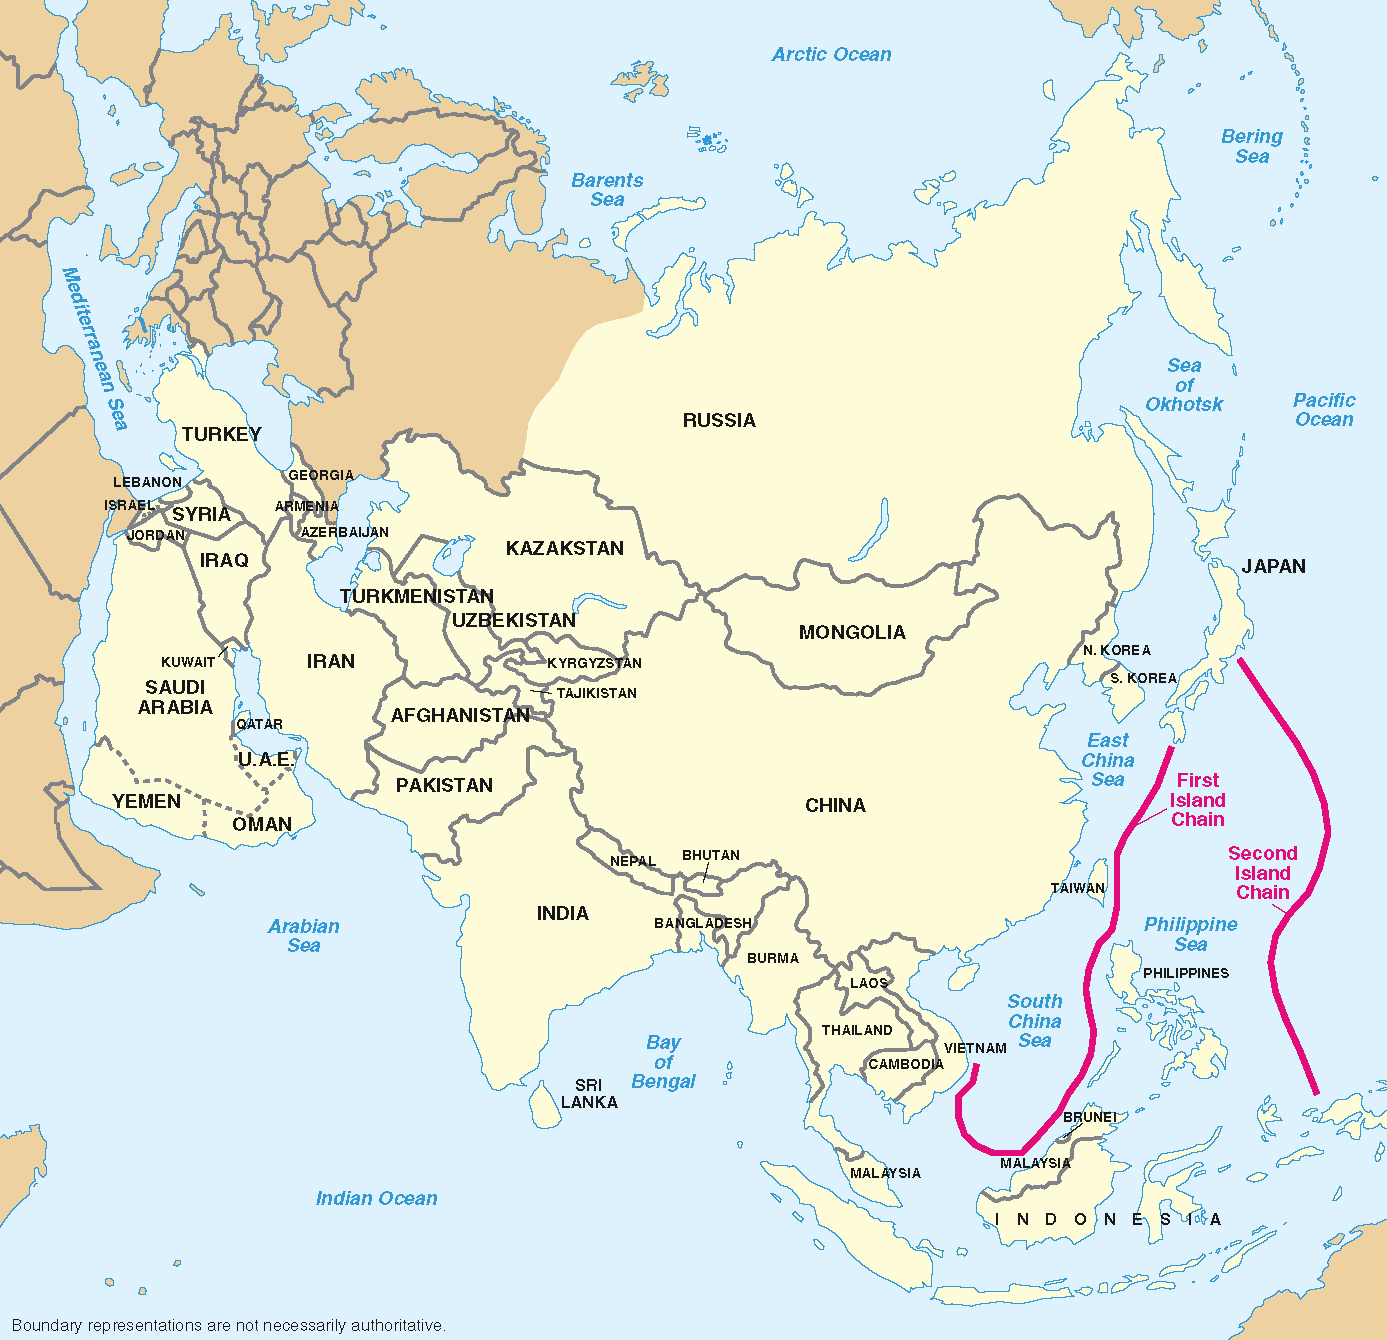 Geographic Boundaries of the First and Second Island Chains.png